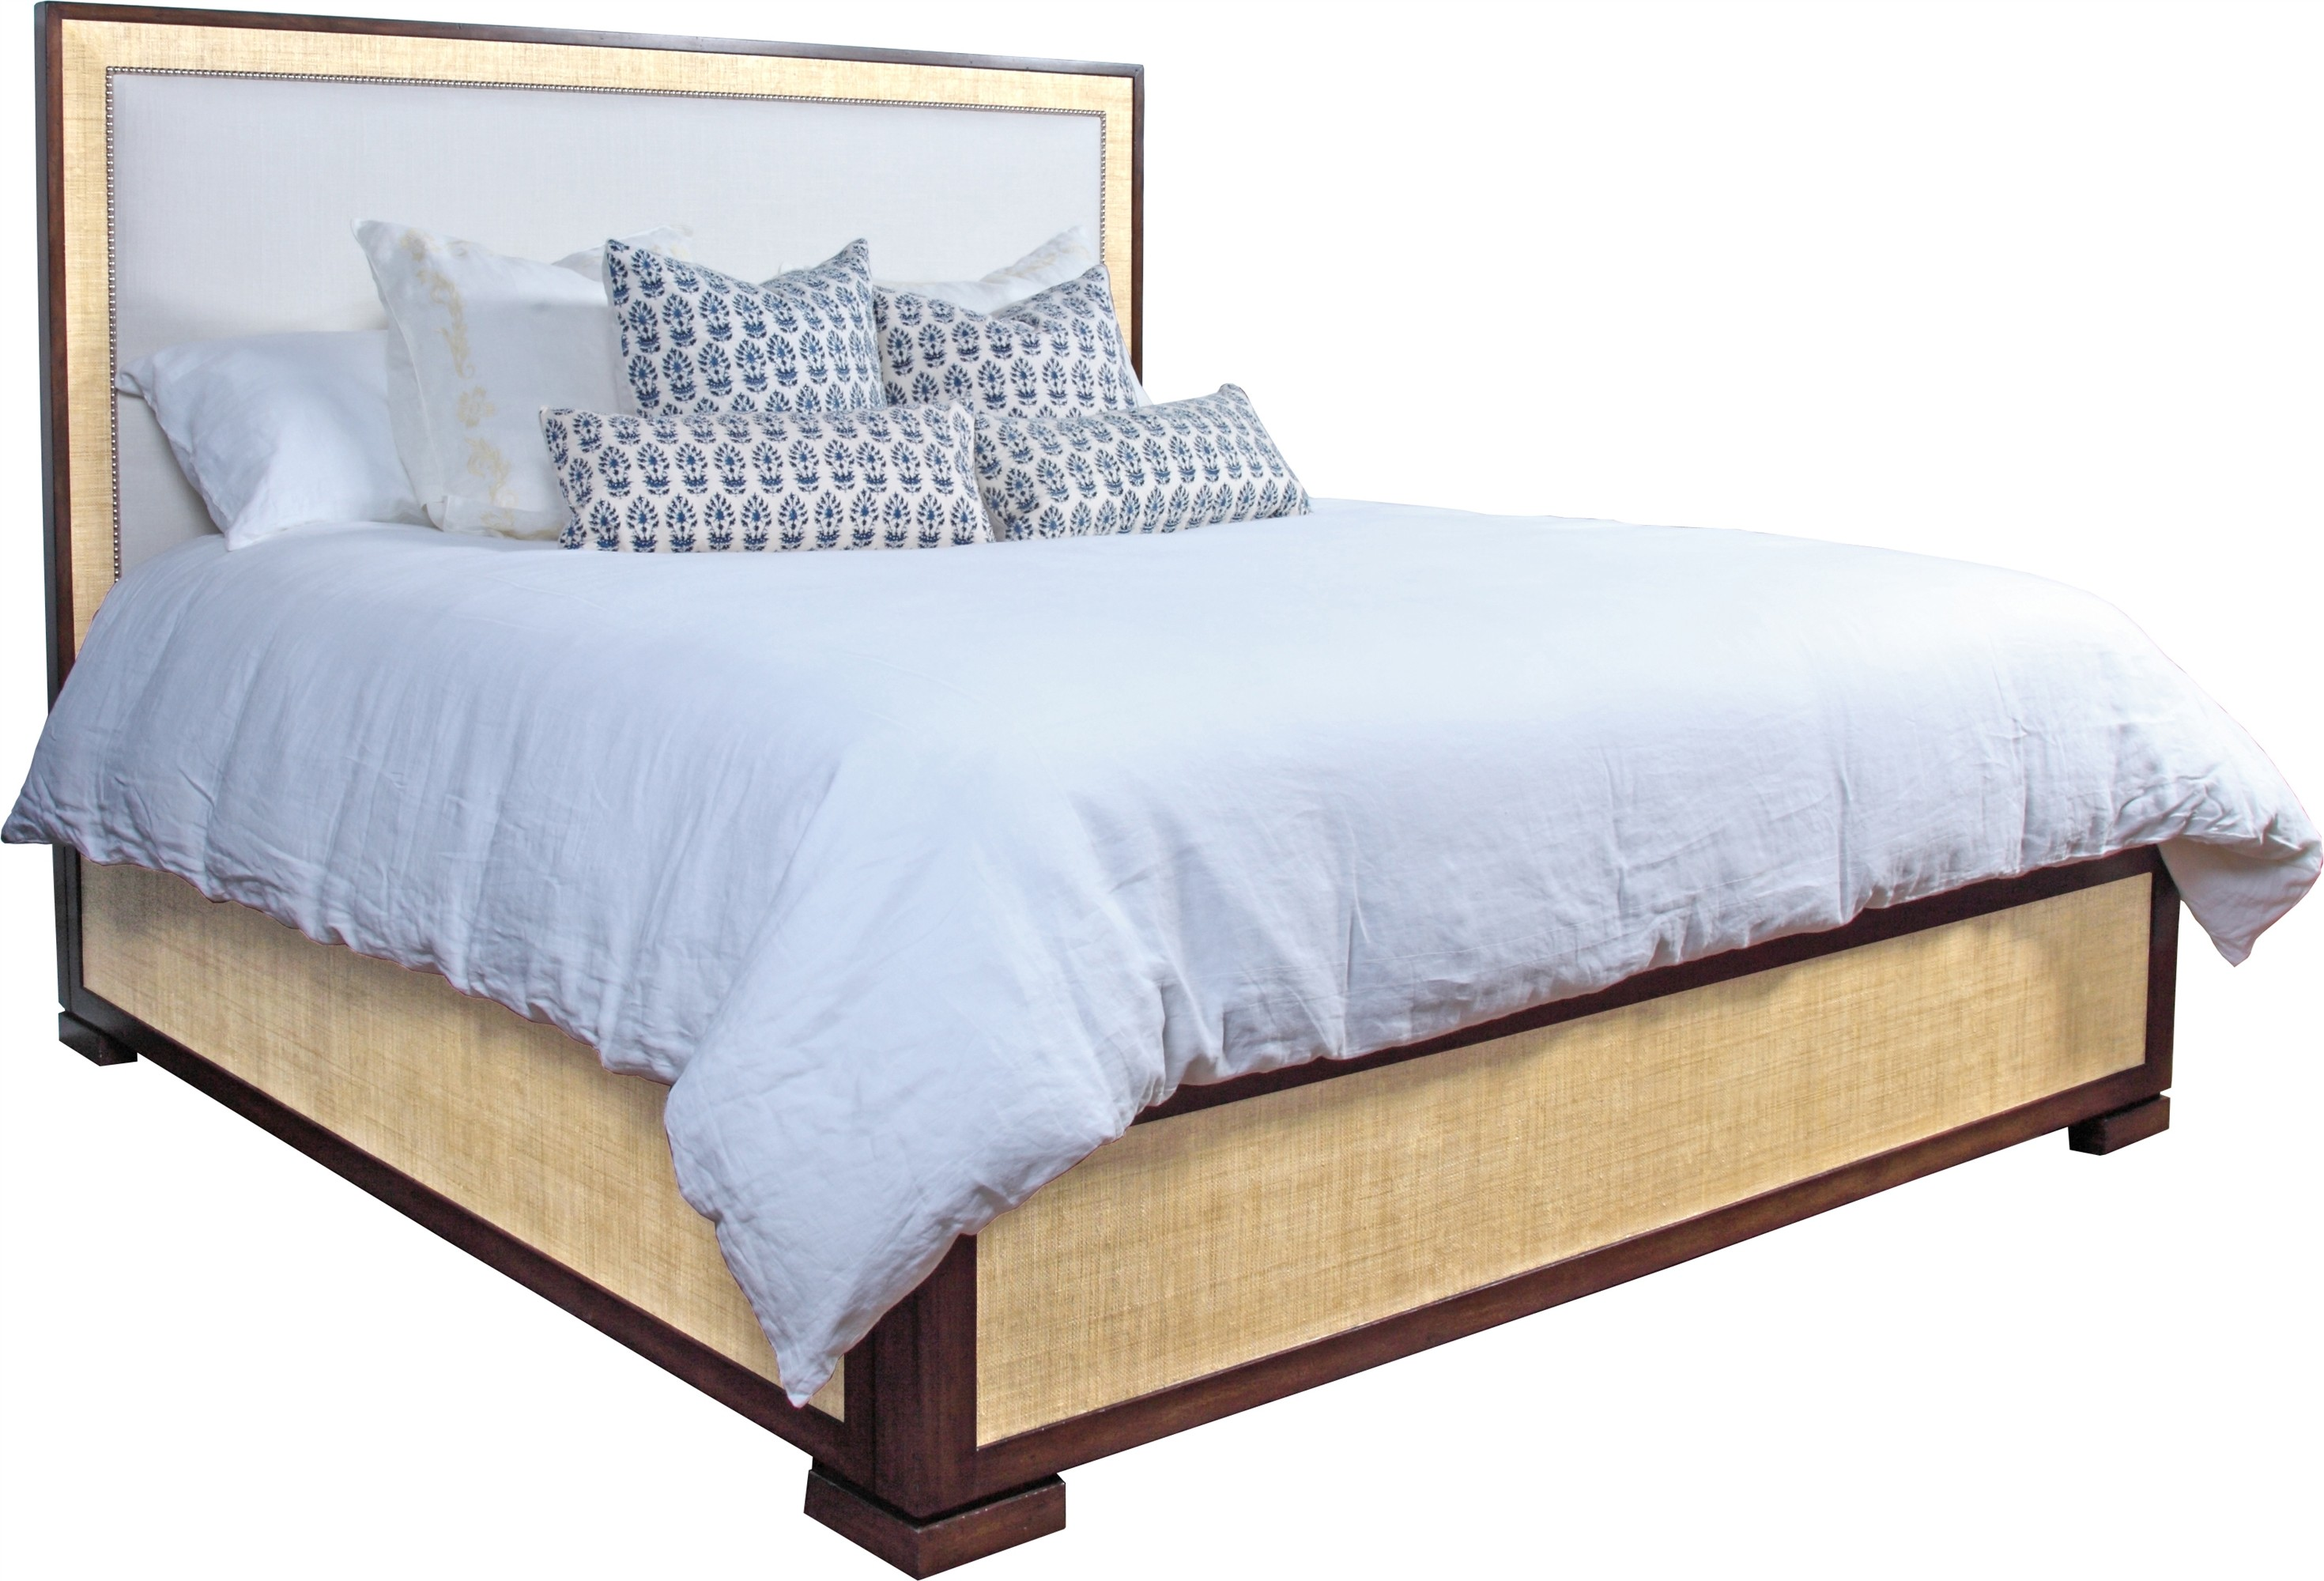 San Remo King Bed-Sand/Flax (Pv-766-209-100-07)